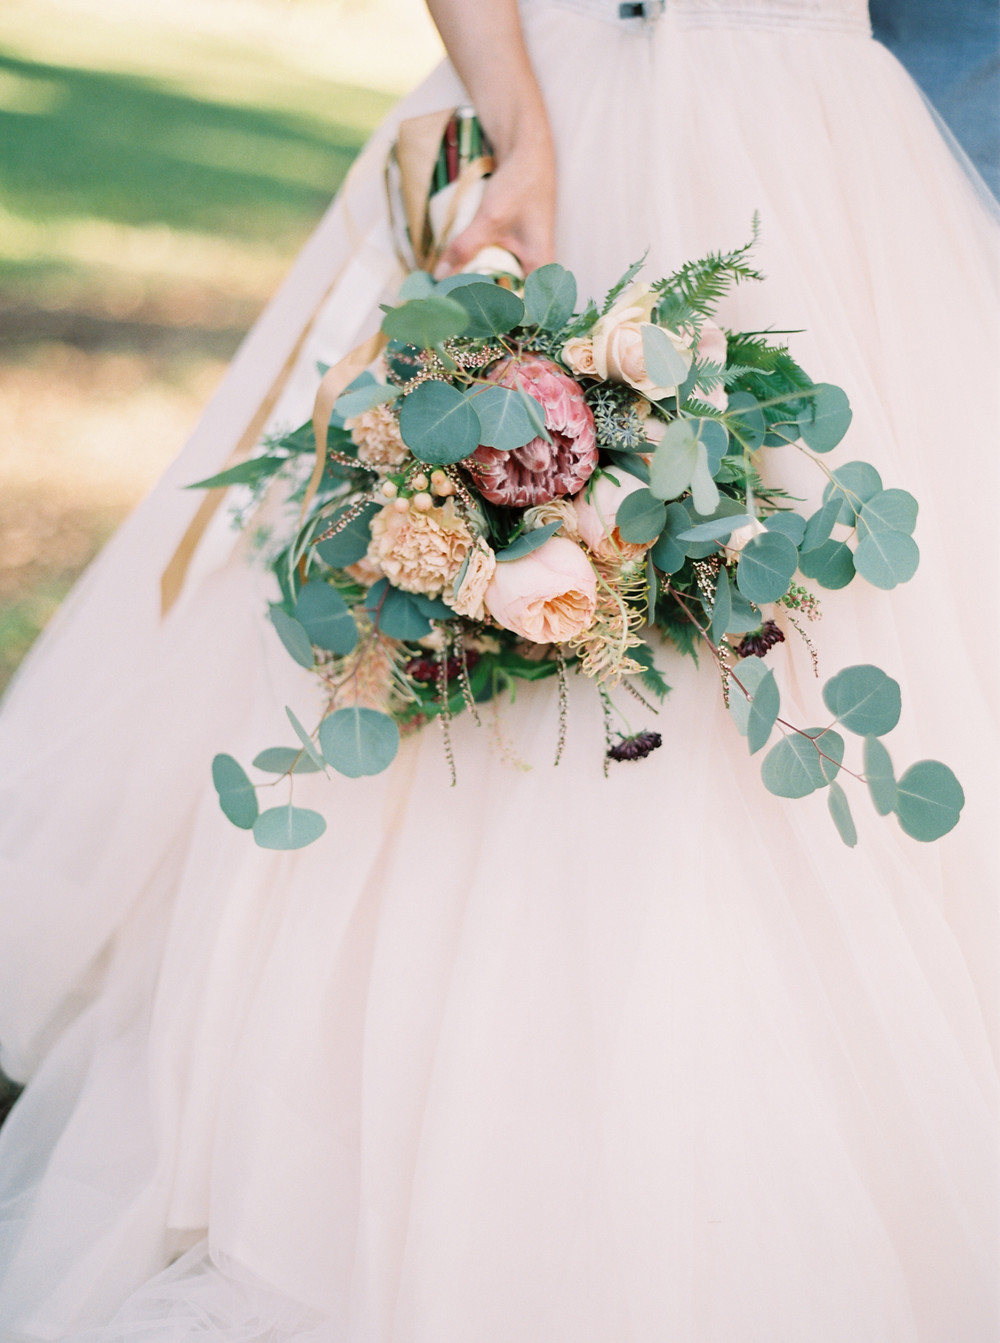 Romantic Ethereal Wedding at Vista Valley Country Club in Southern California